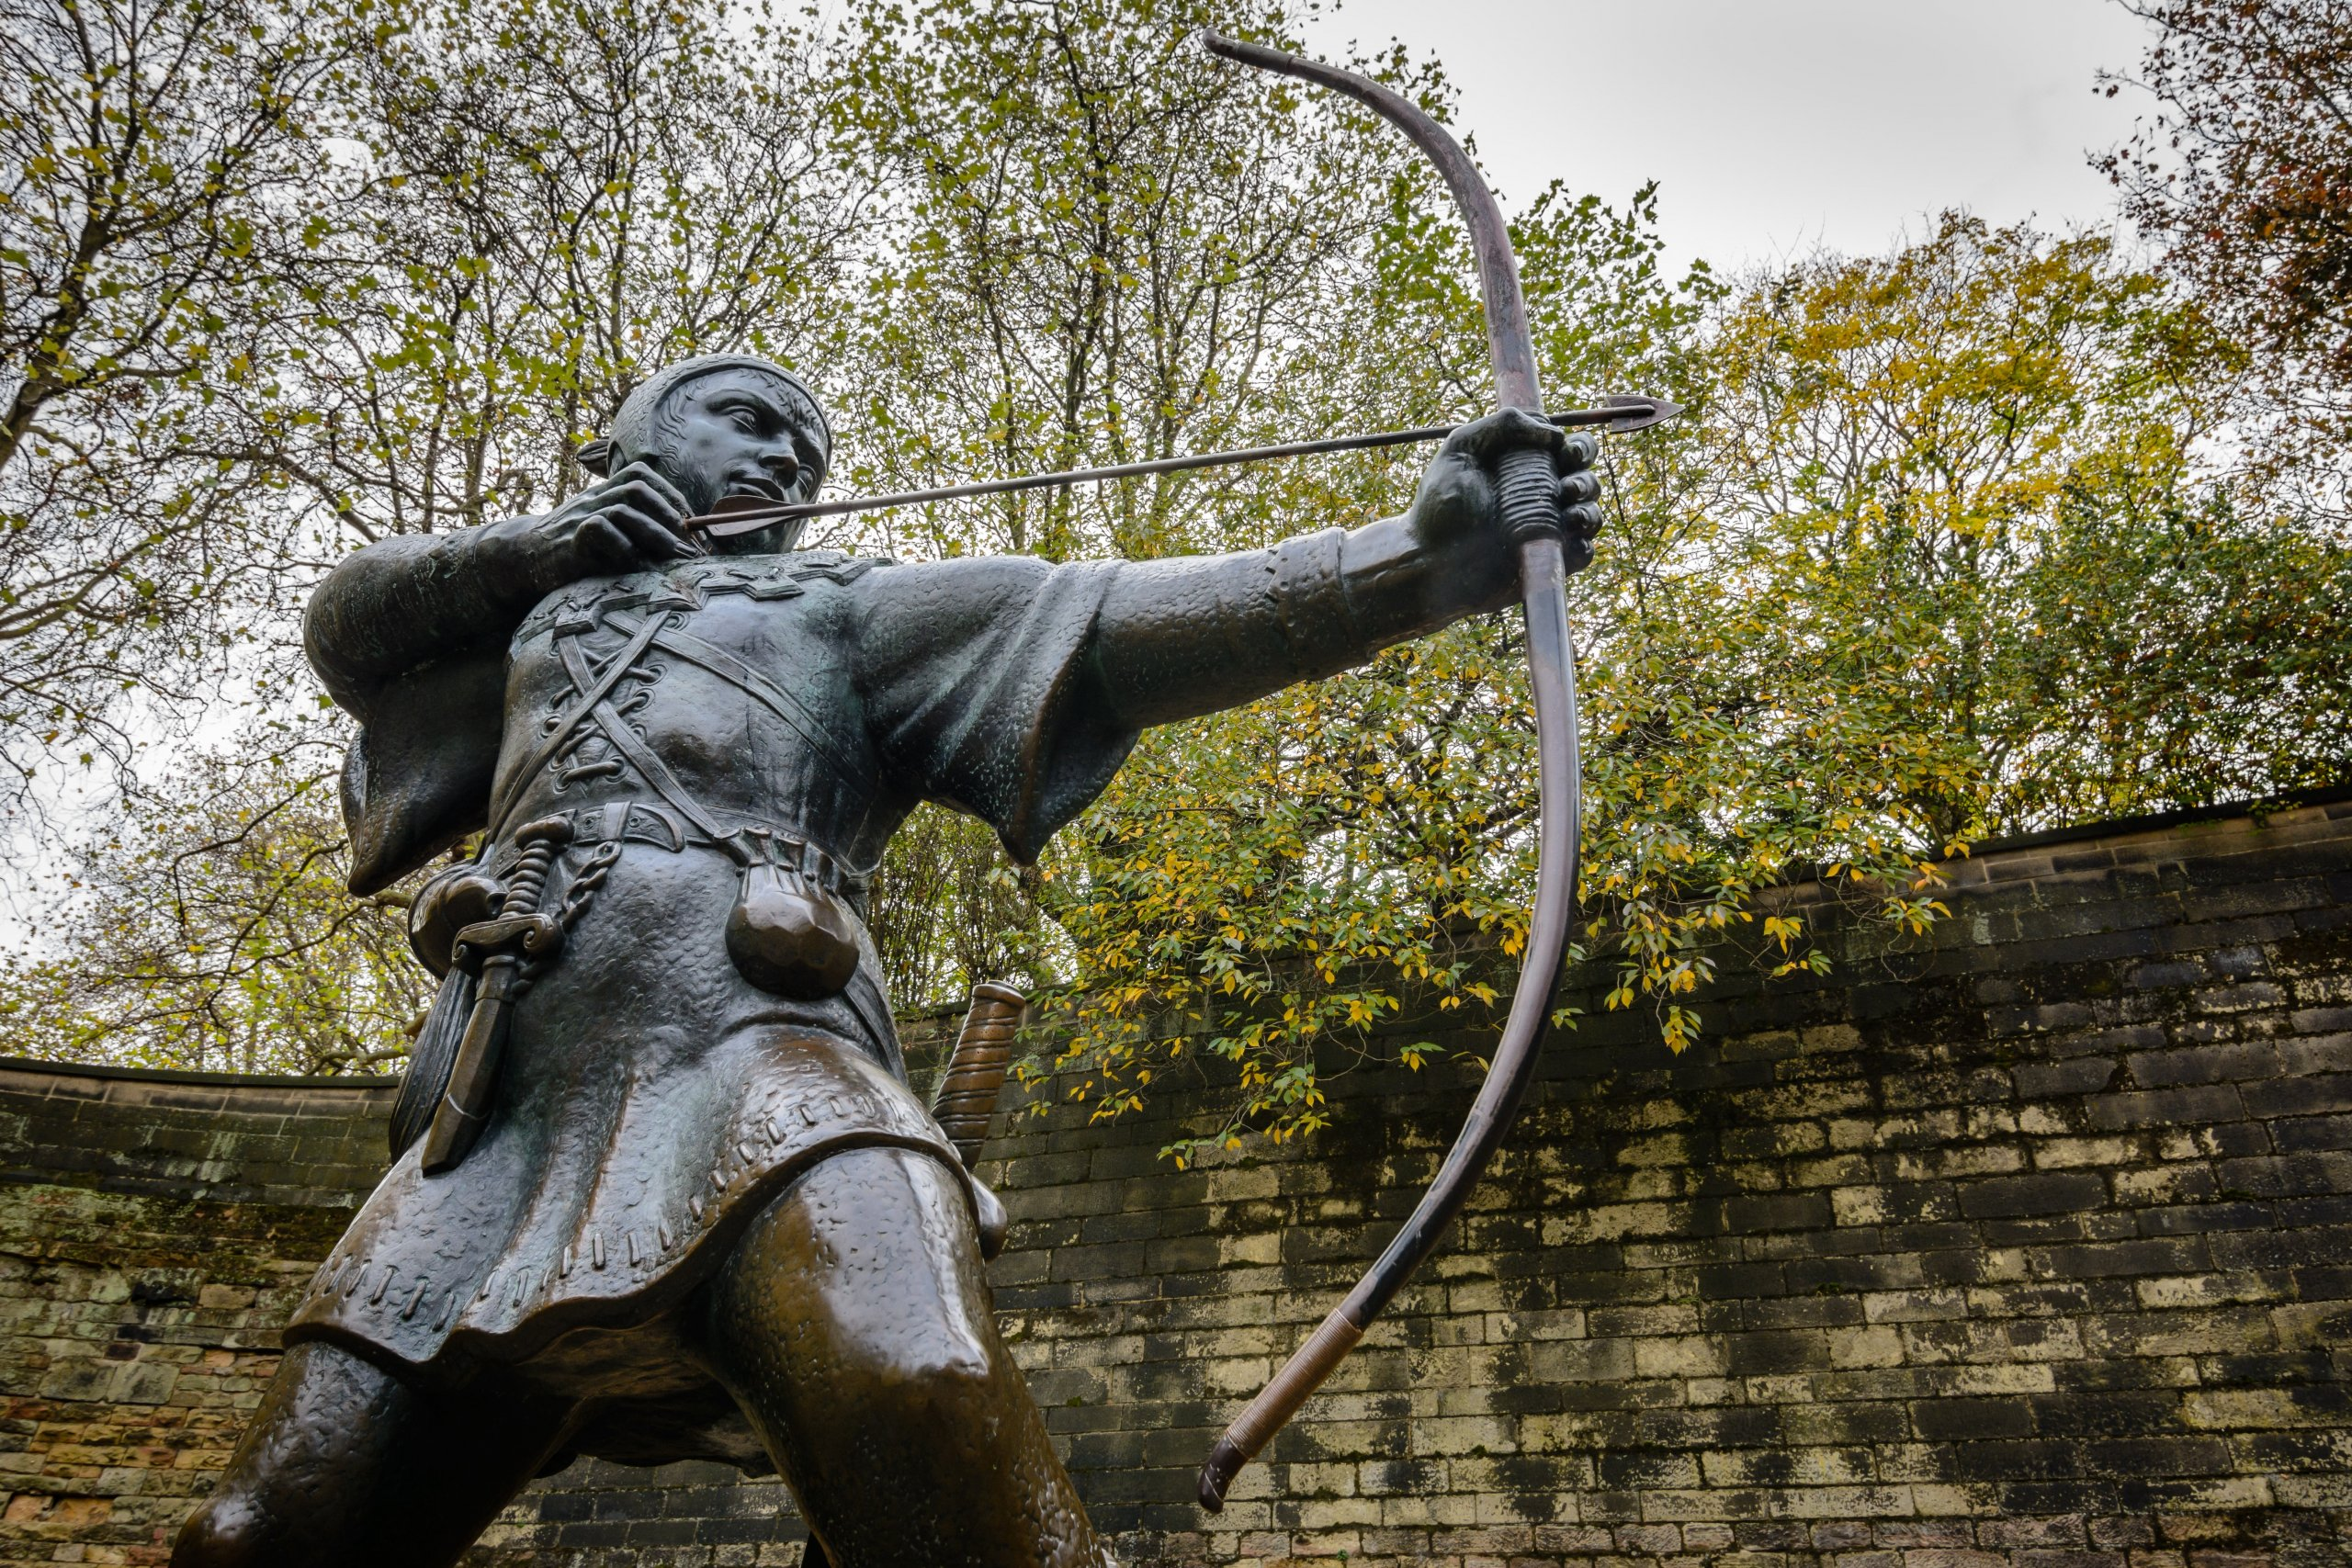 metal statue of man holding bow and arrow with stone wall and green trees in background